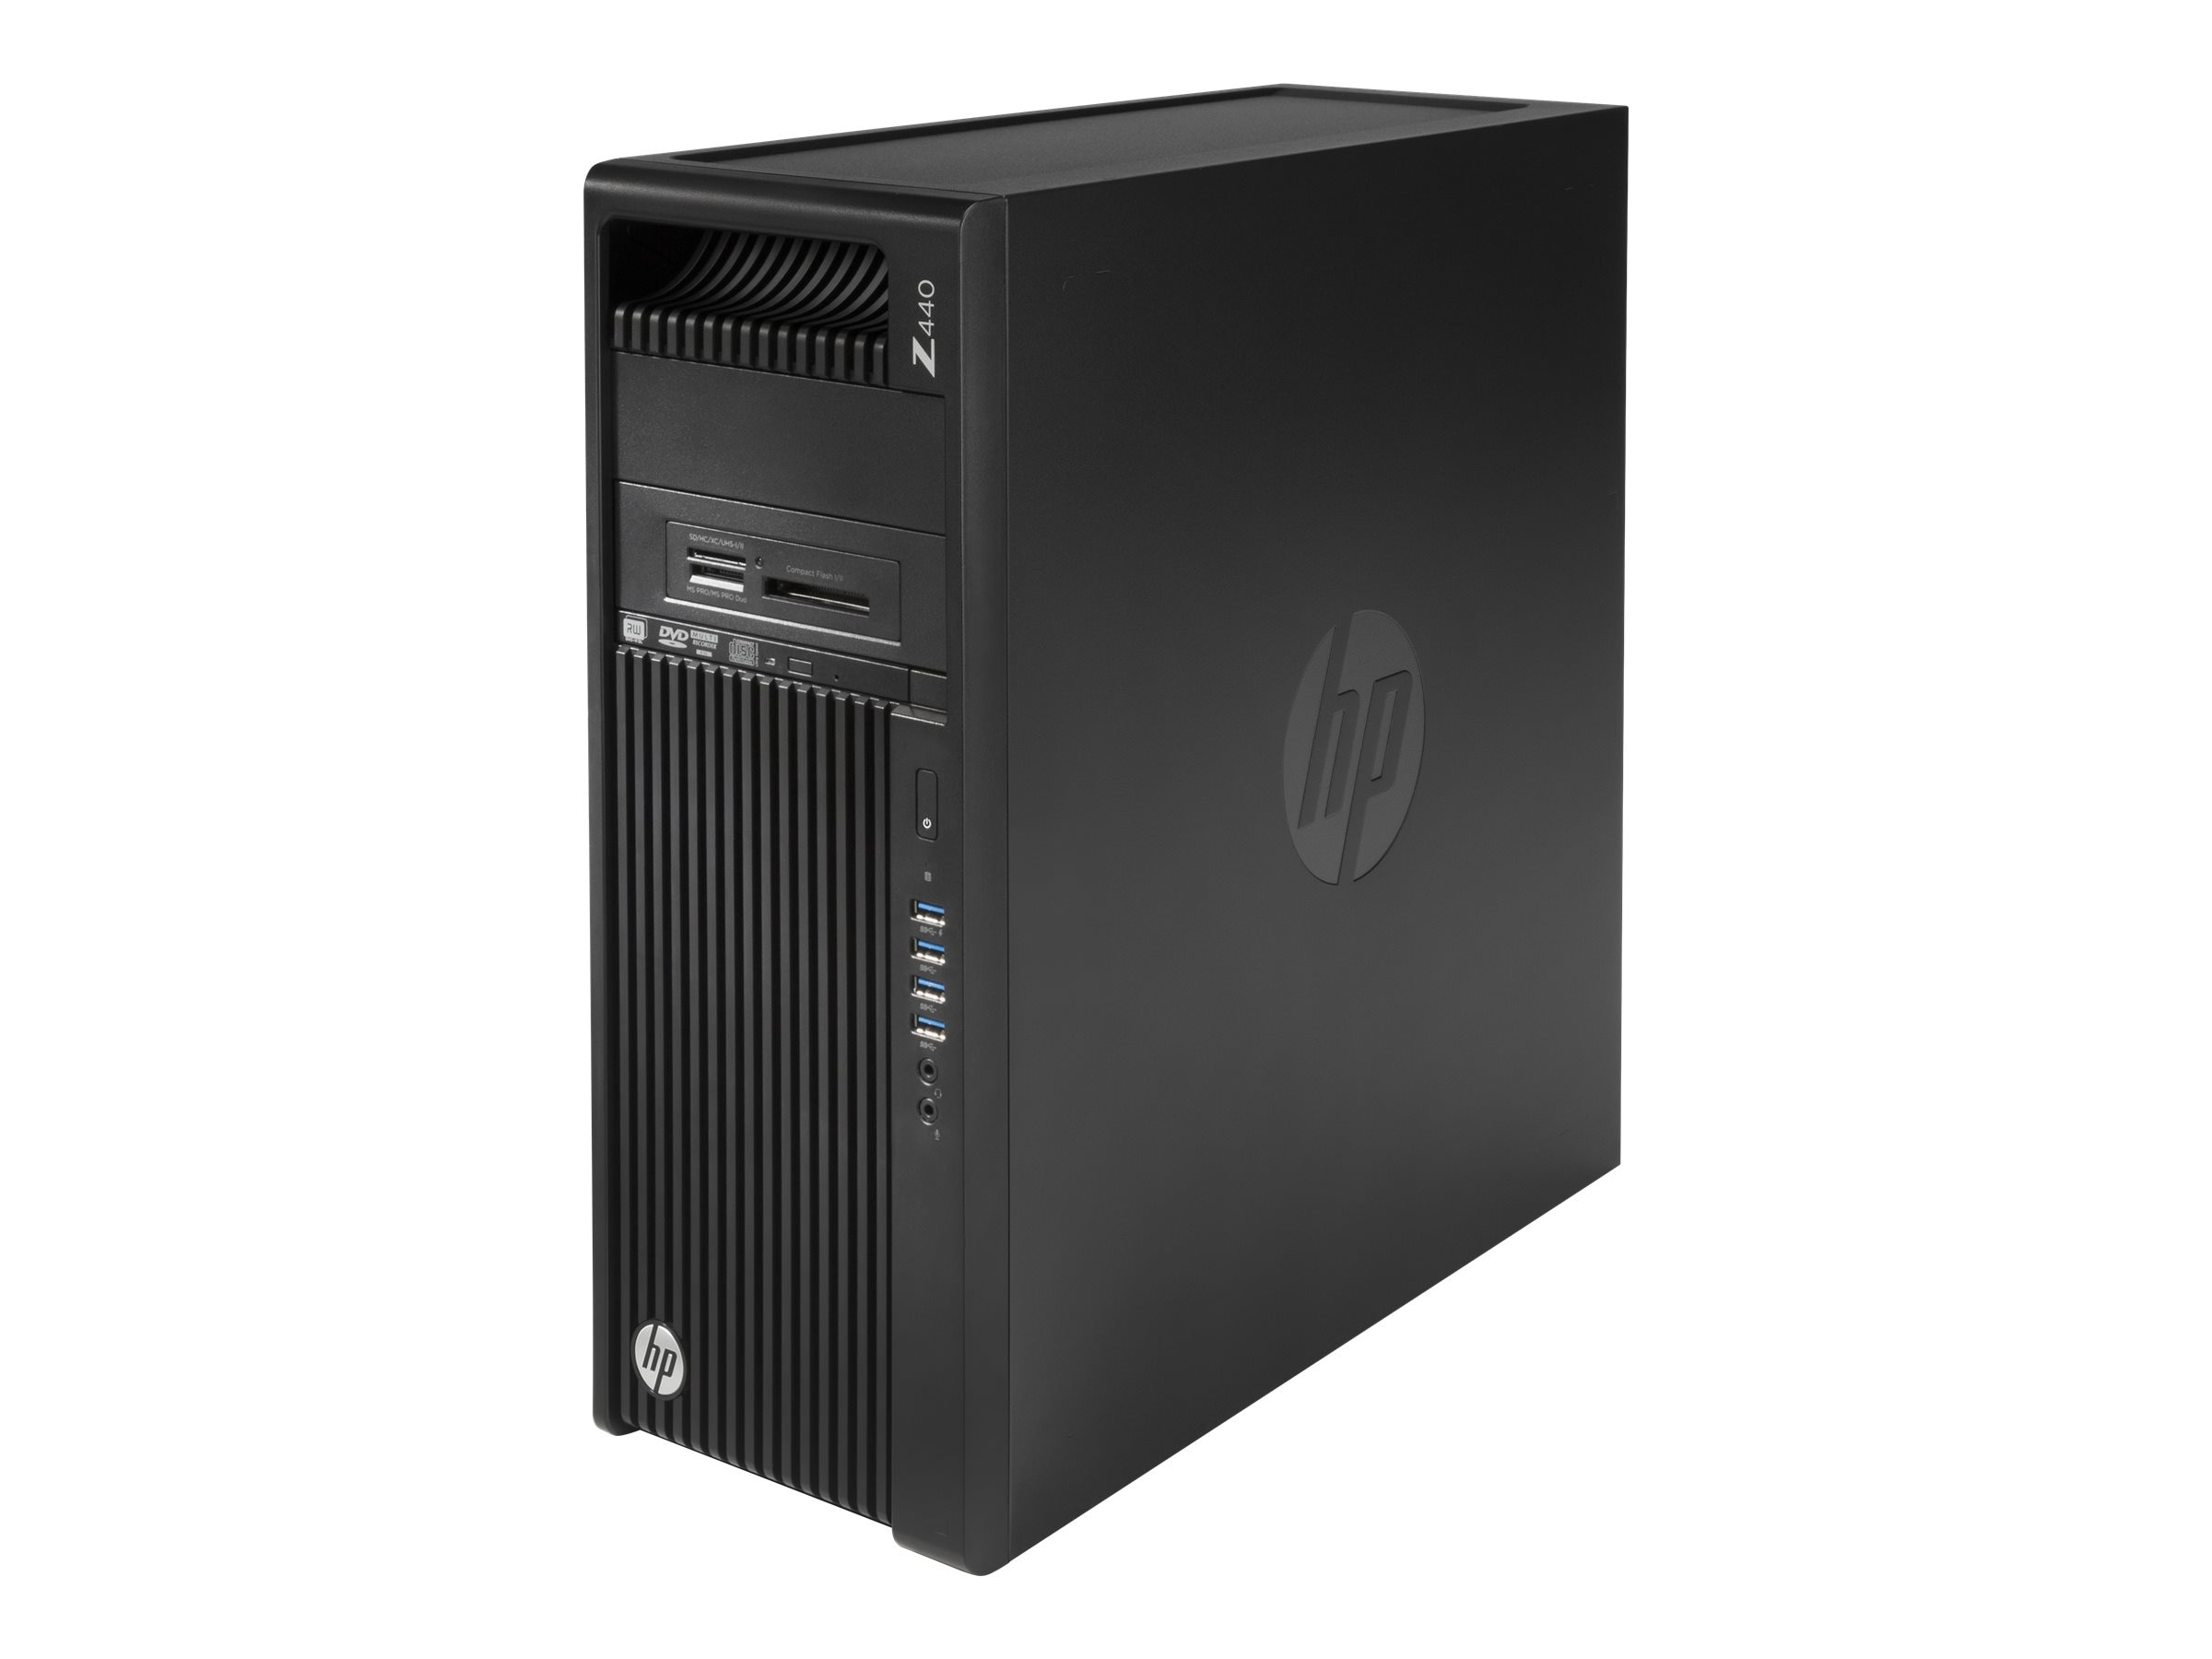 HP Smart Buy Z440 3.5GHz Xeon Microsoft Windows 7 Professional 64-bit Edition   Windows 8.1 Pro, F1M46UT#ABA, 18142306, Workstations